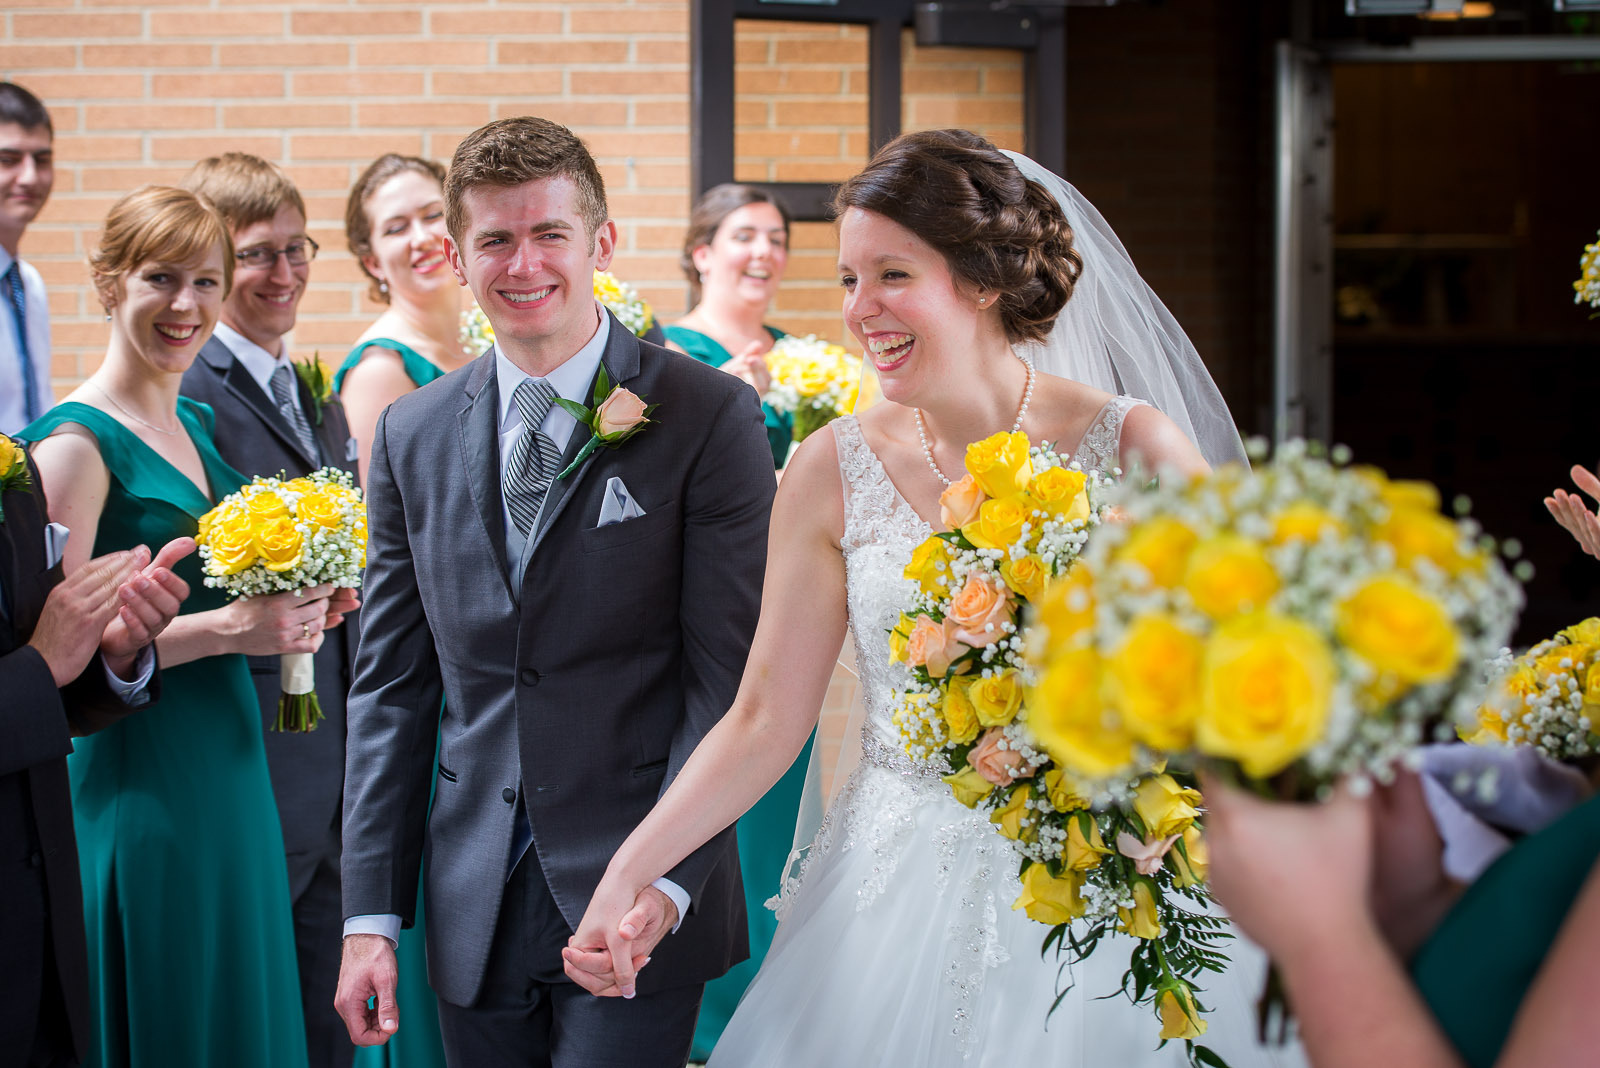 Eric_and_Christy_Photography_Blog_Wedding_Kelly_Michael-16